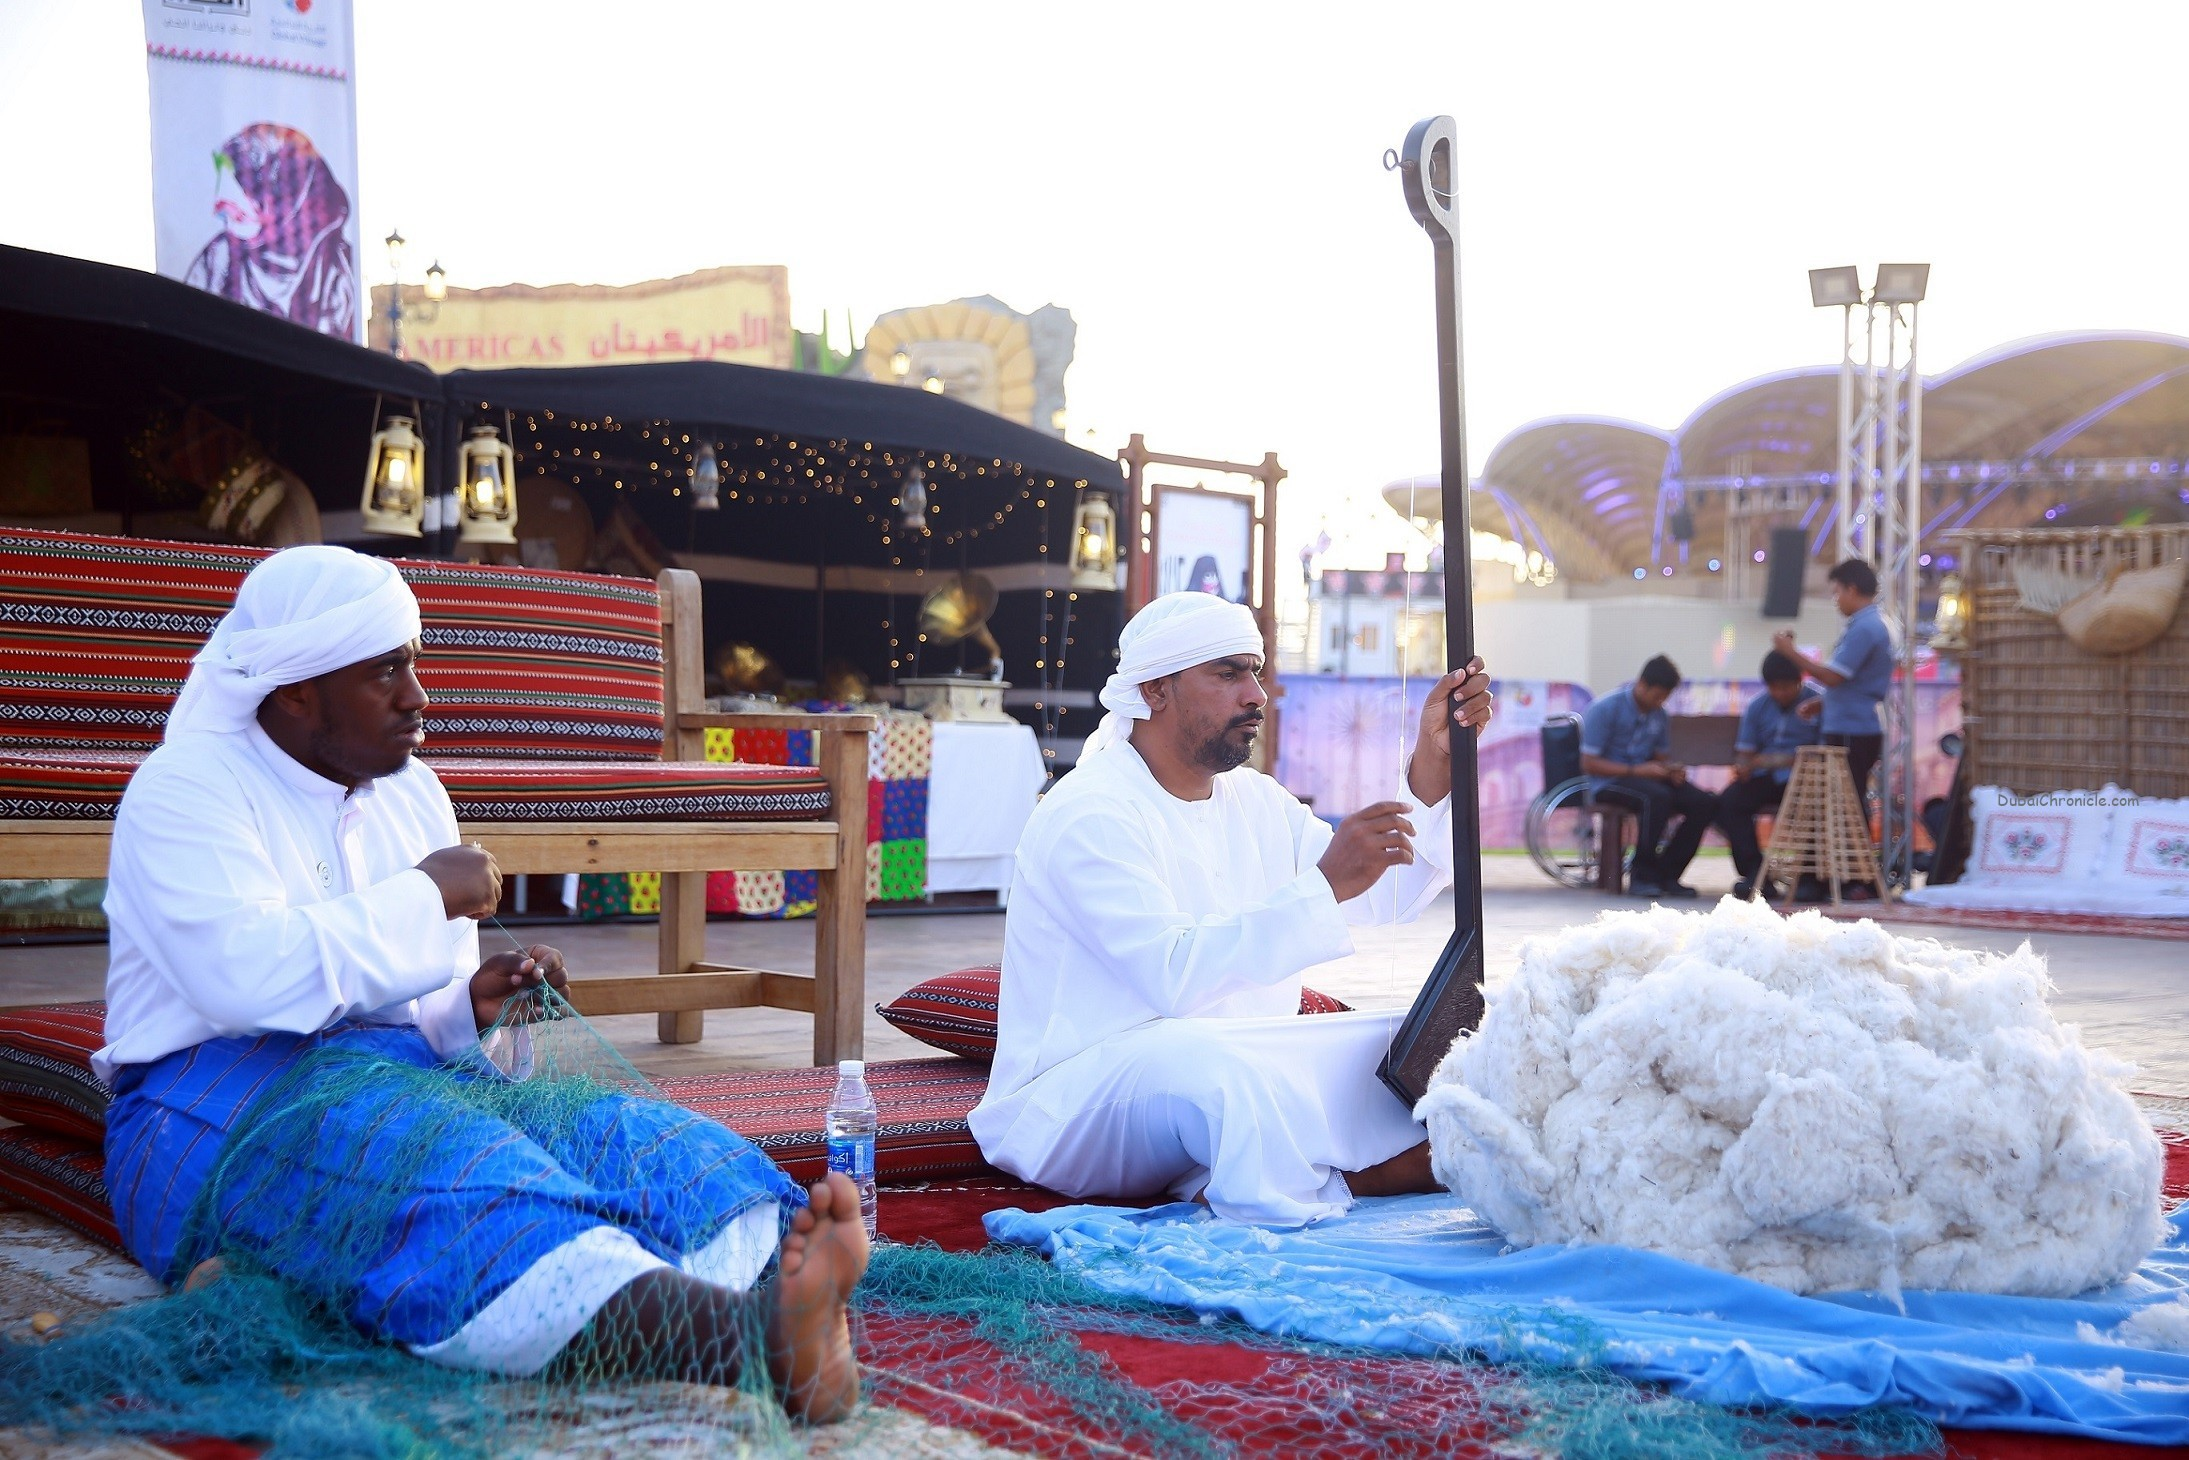 Dubai Culture: Bridging The Link Between Heritage, Culture and Tourism